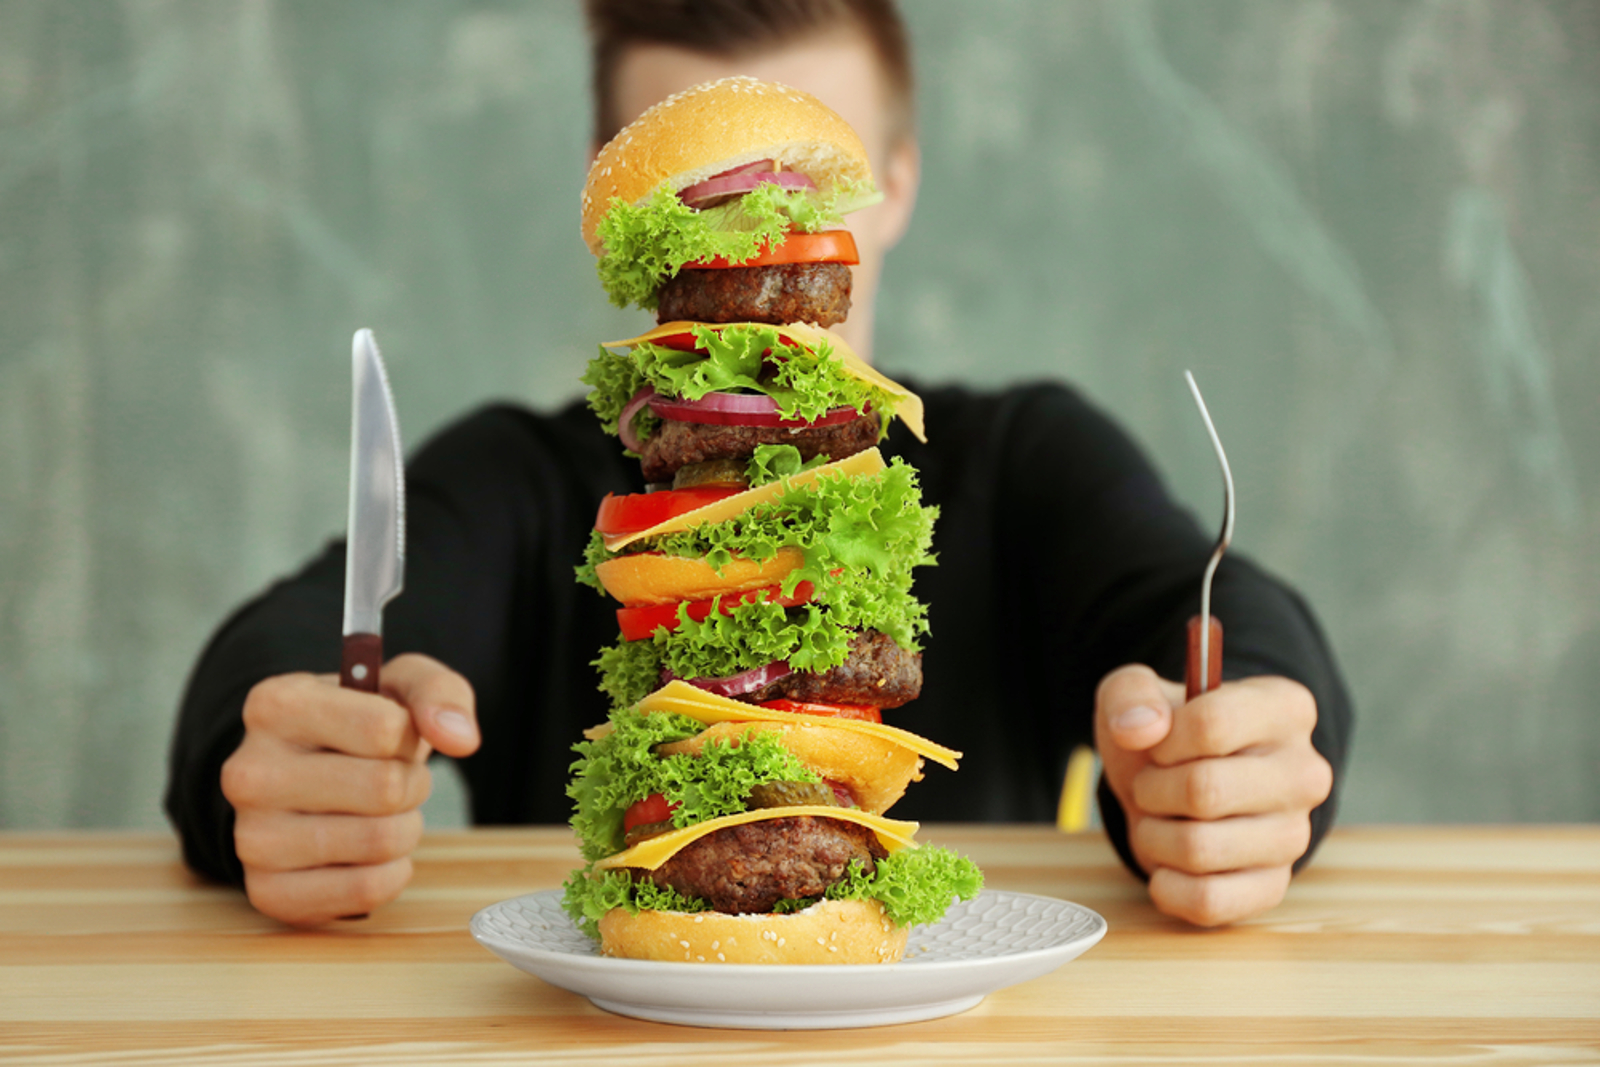 The Disturbing Ways Americans Are Tricked Into Eating More Meat